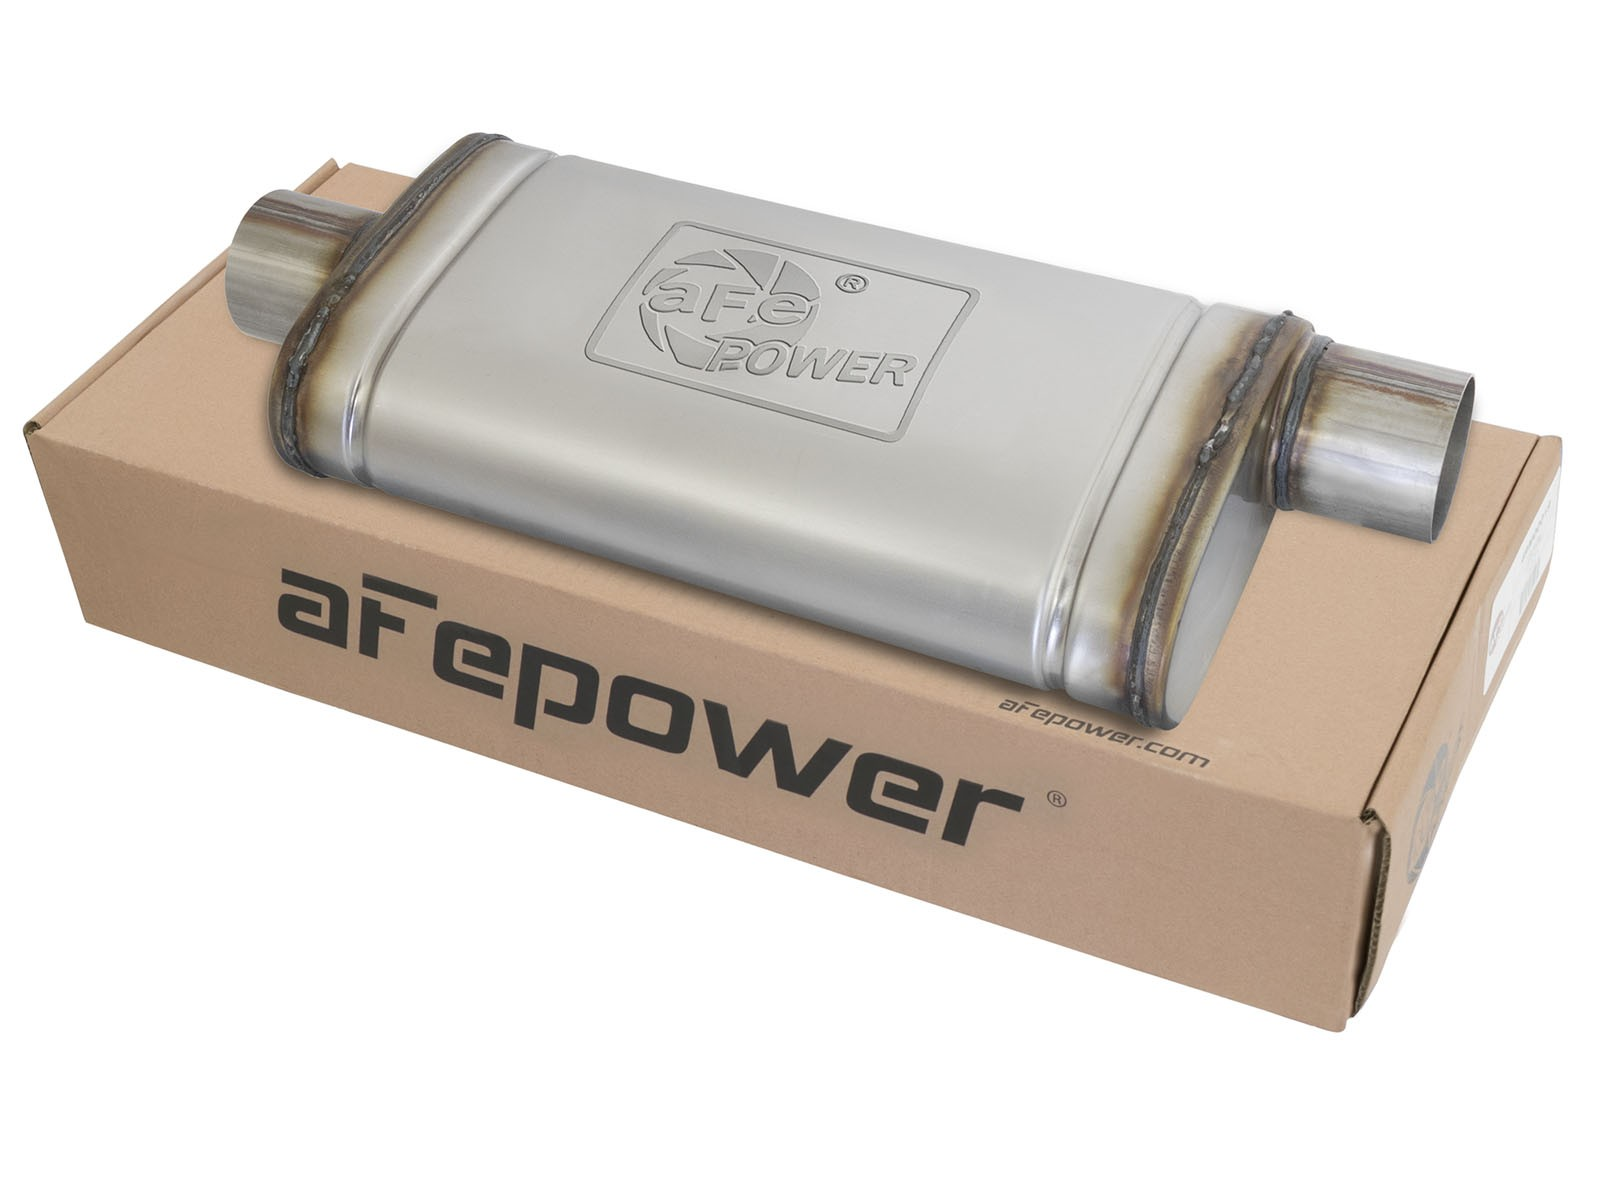 "aFe POWER 49M00020 MACH Force-Xp 3"" 409 Stainless Steel Muffler"